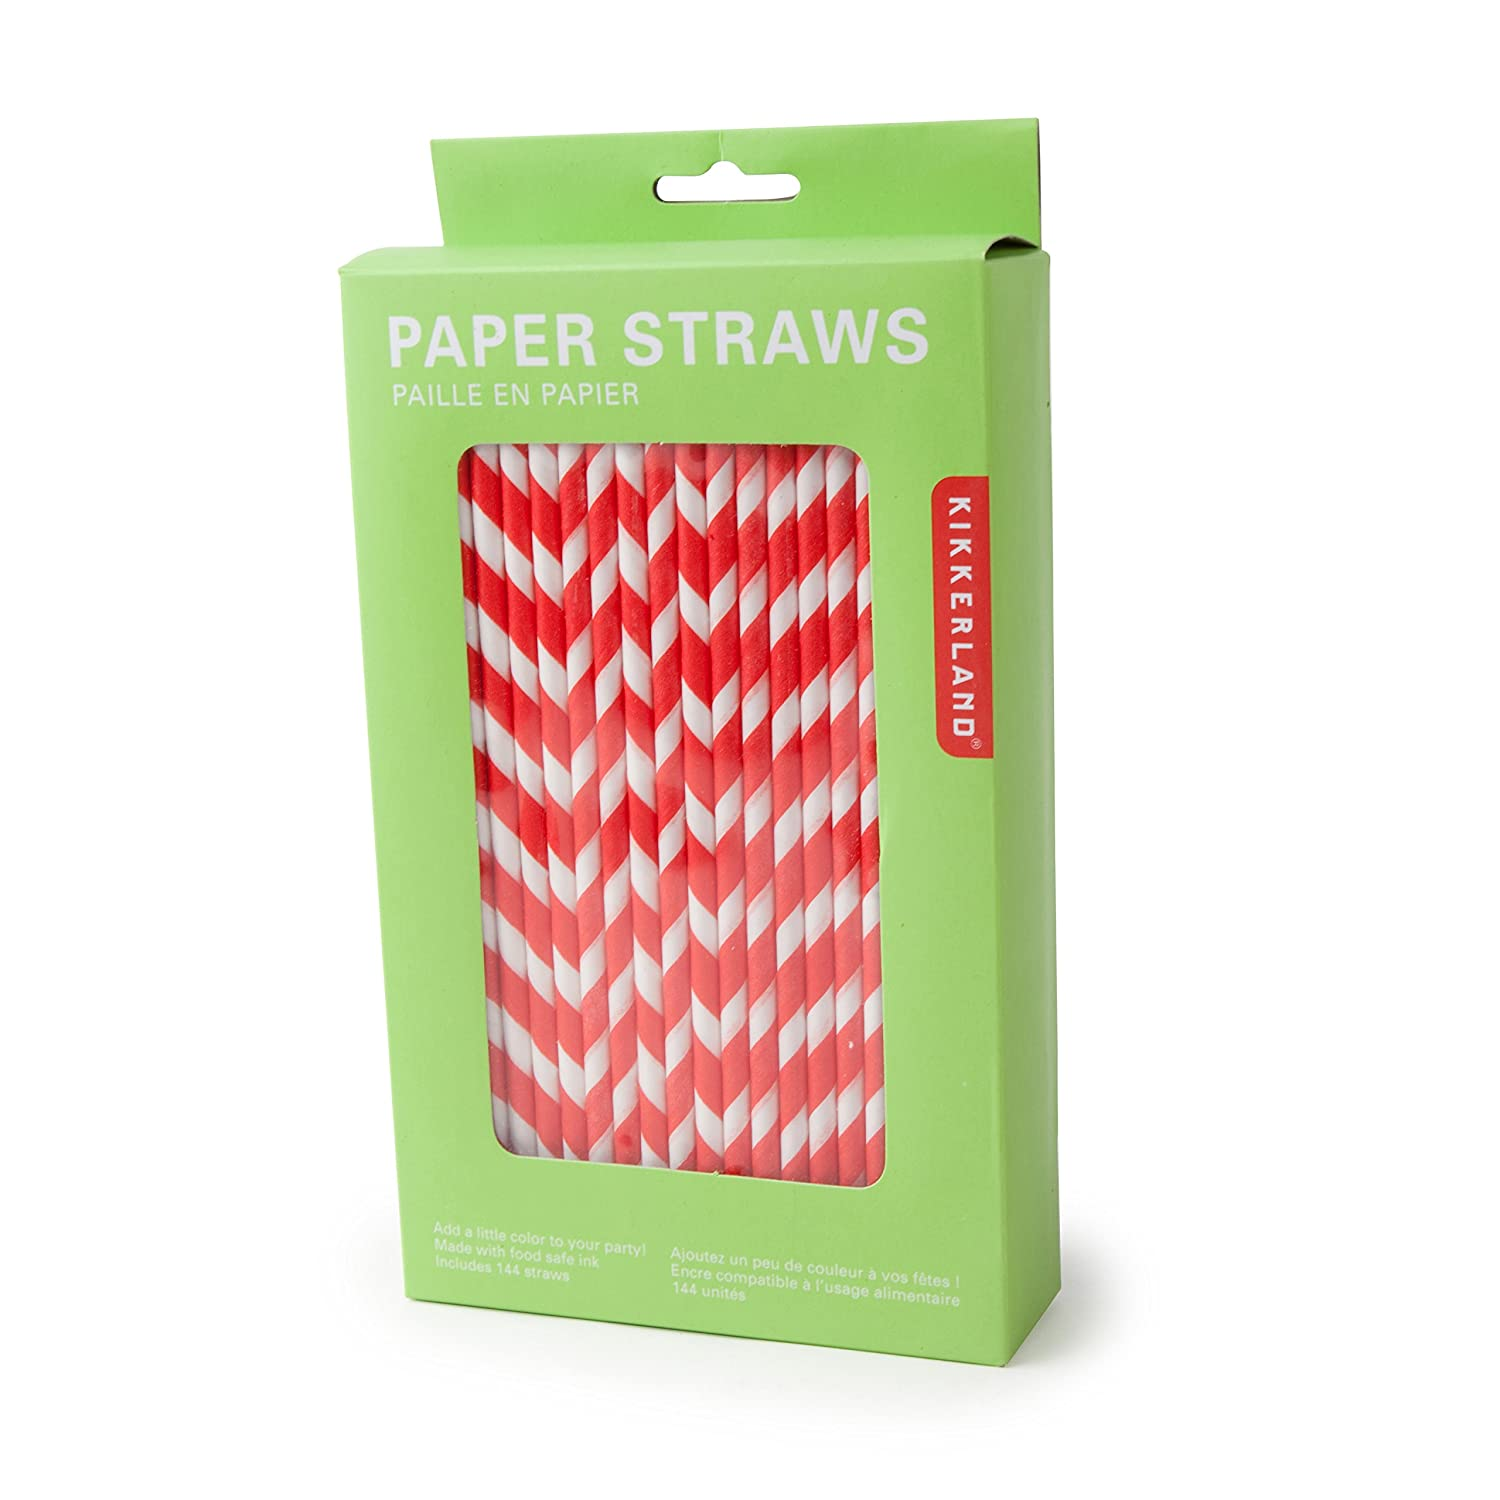 kikkerland biodegradable paper straws gray and white striped box  - kikkerland biodegradable paper straws gray and white striped box of amazonca home  kitchen